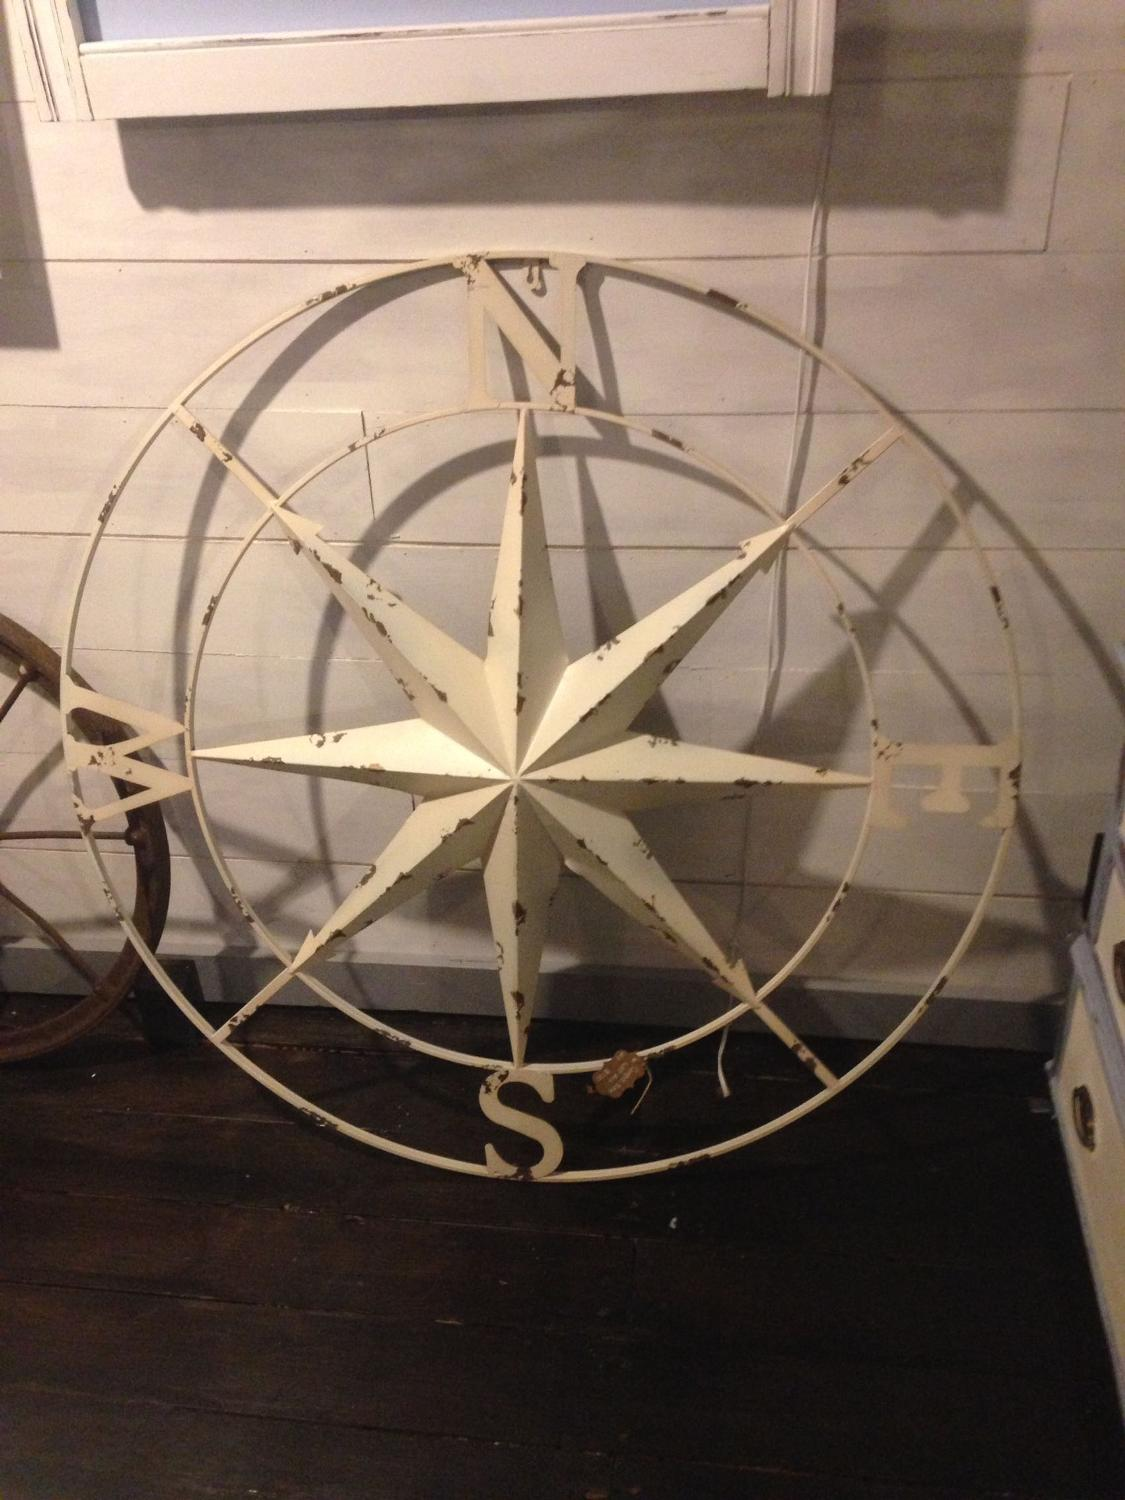 Find More Compass Rose Wall Art For Sale At Up To 90 Off Murfreesboro Tn